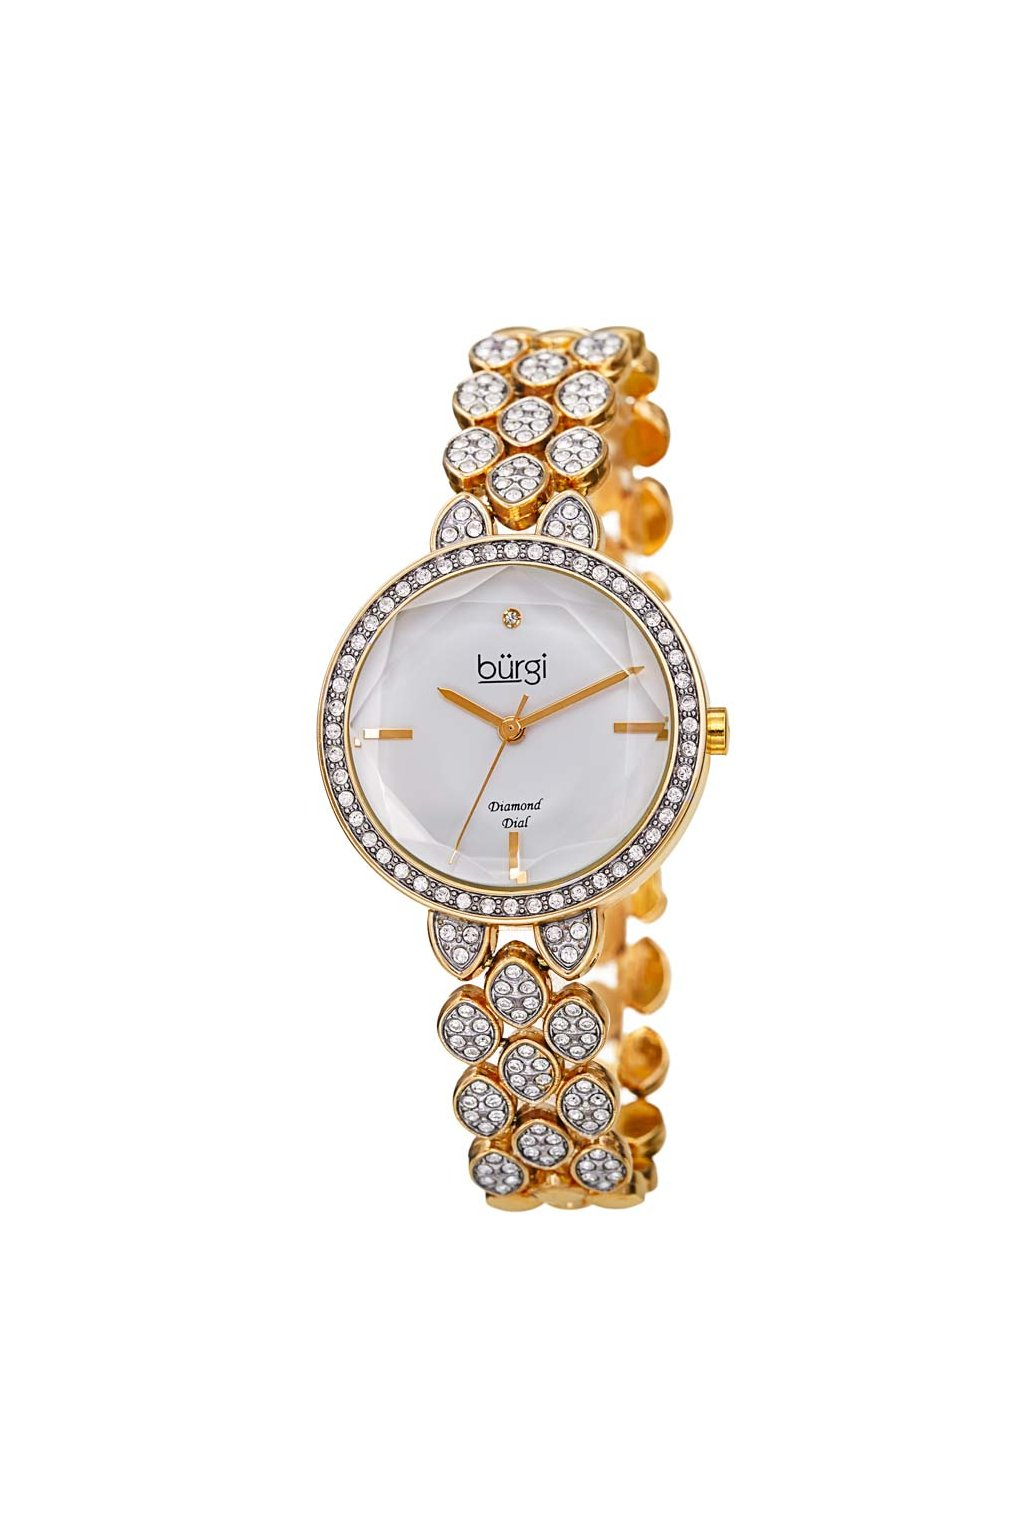 burgi bur232yg ladies quartz watch 5